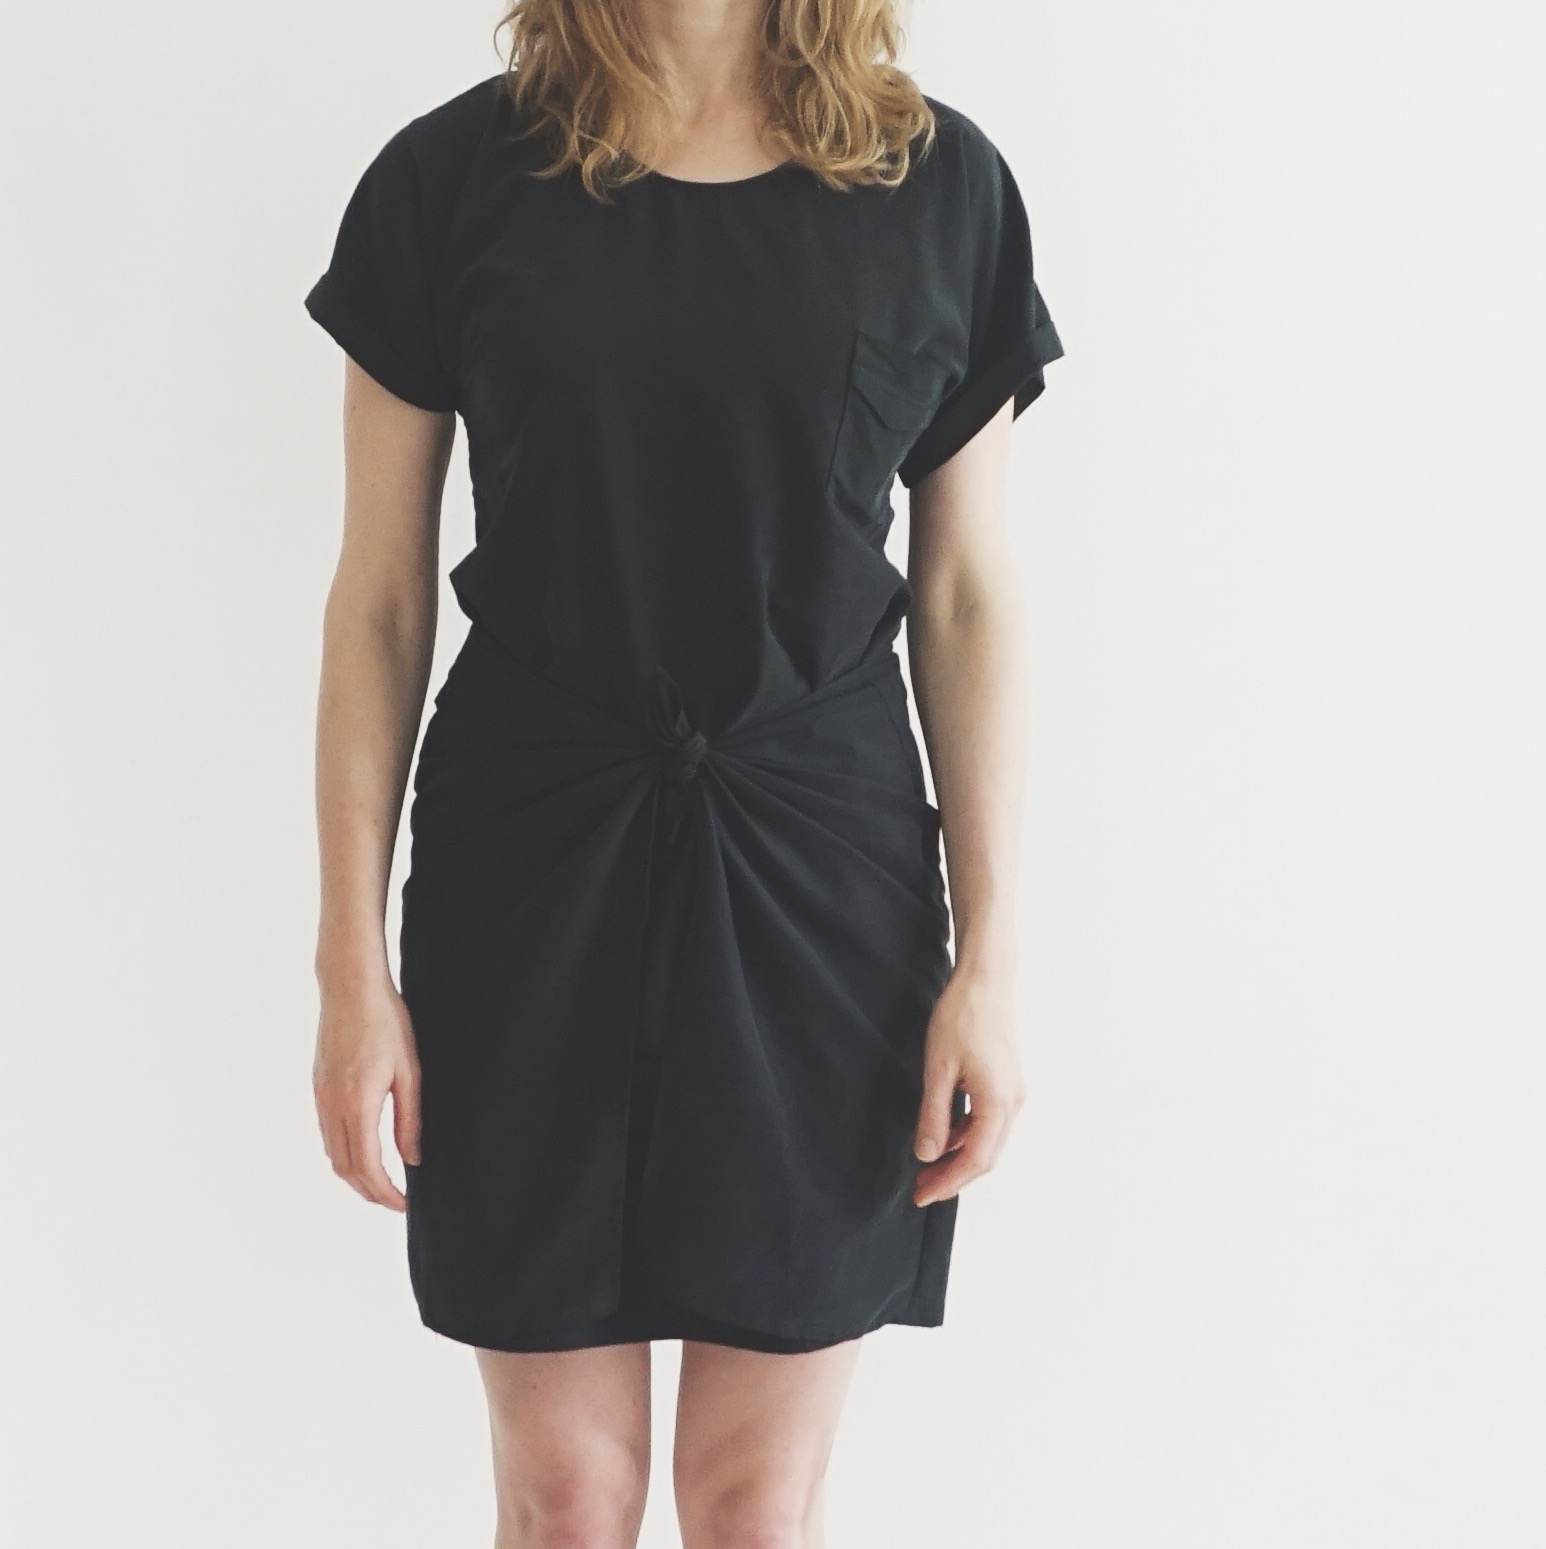 Tie Dress - Easy PDF Sewing Pattern